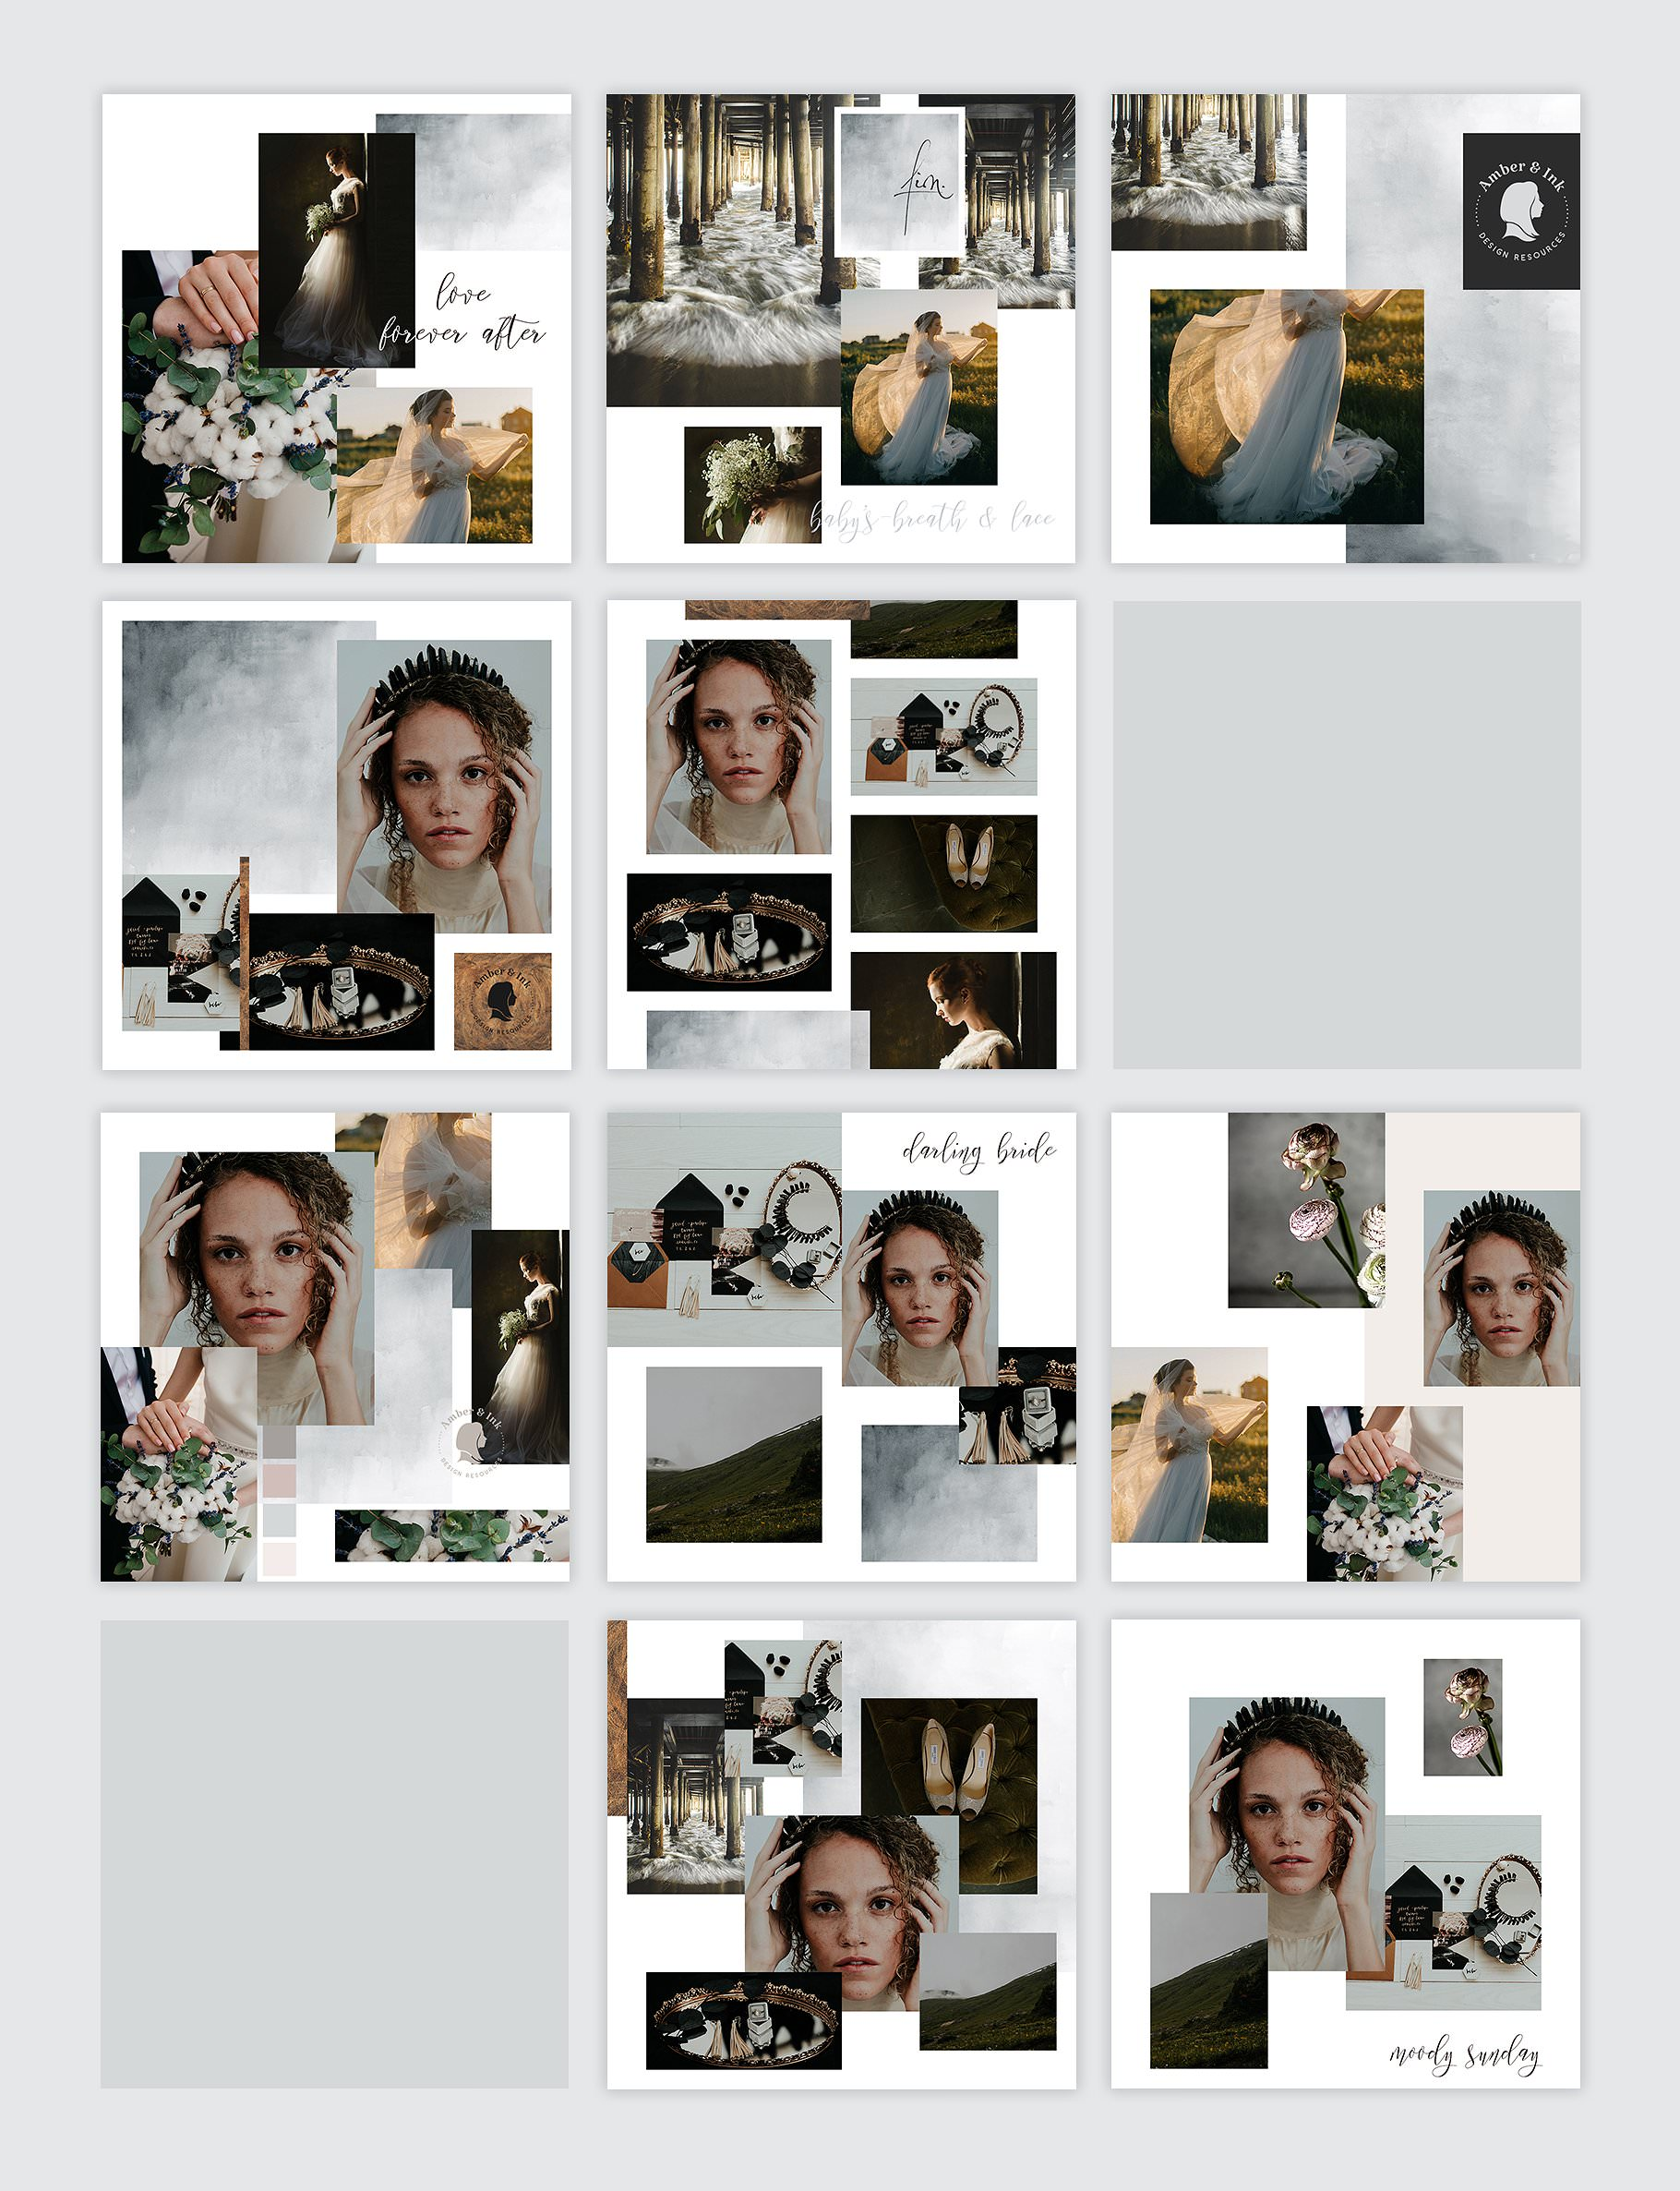 Instagram Post templates for photographers and designers.